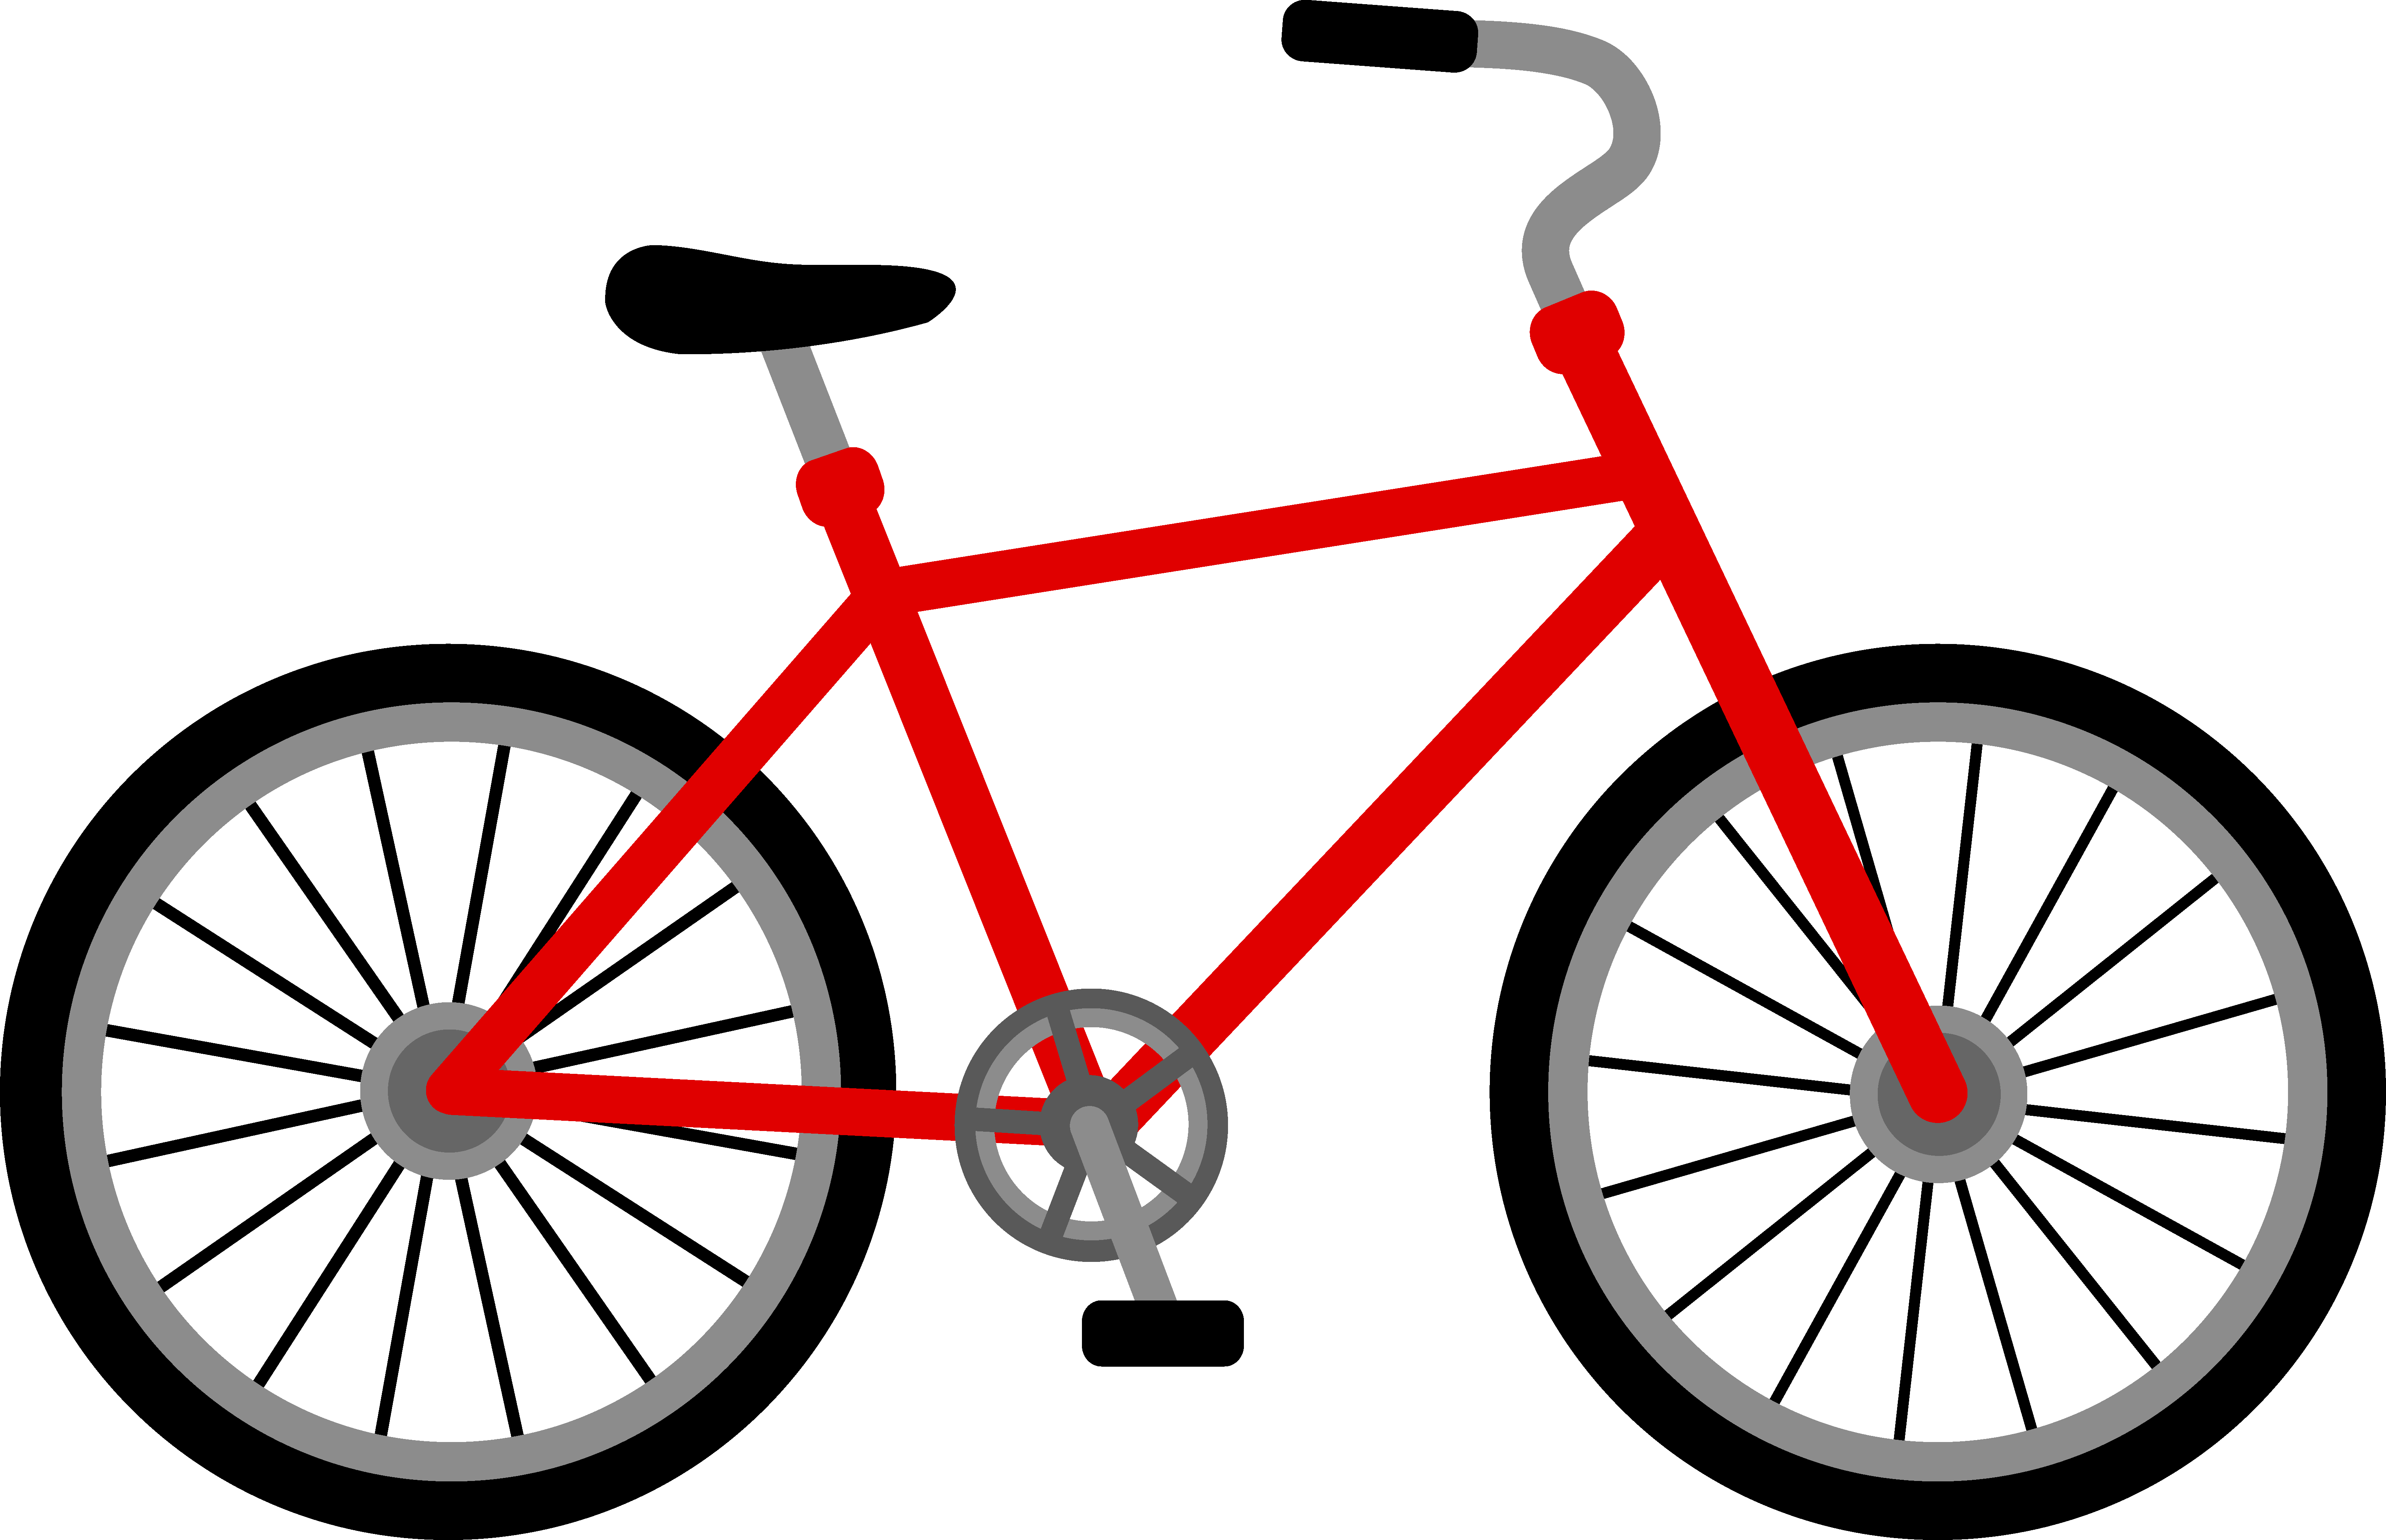 Bike clipart toddler bike. Desktop backgrounds bicycle free